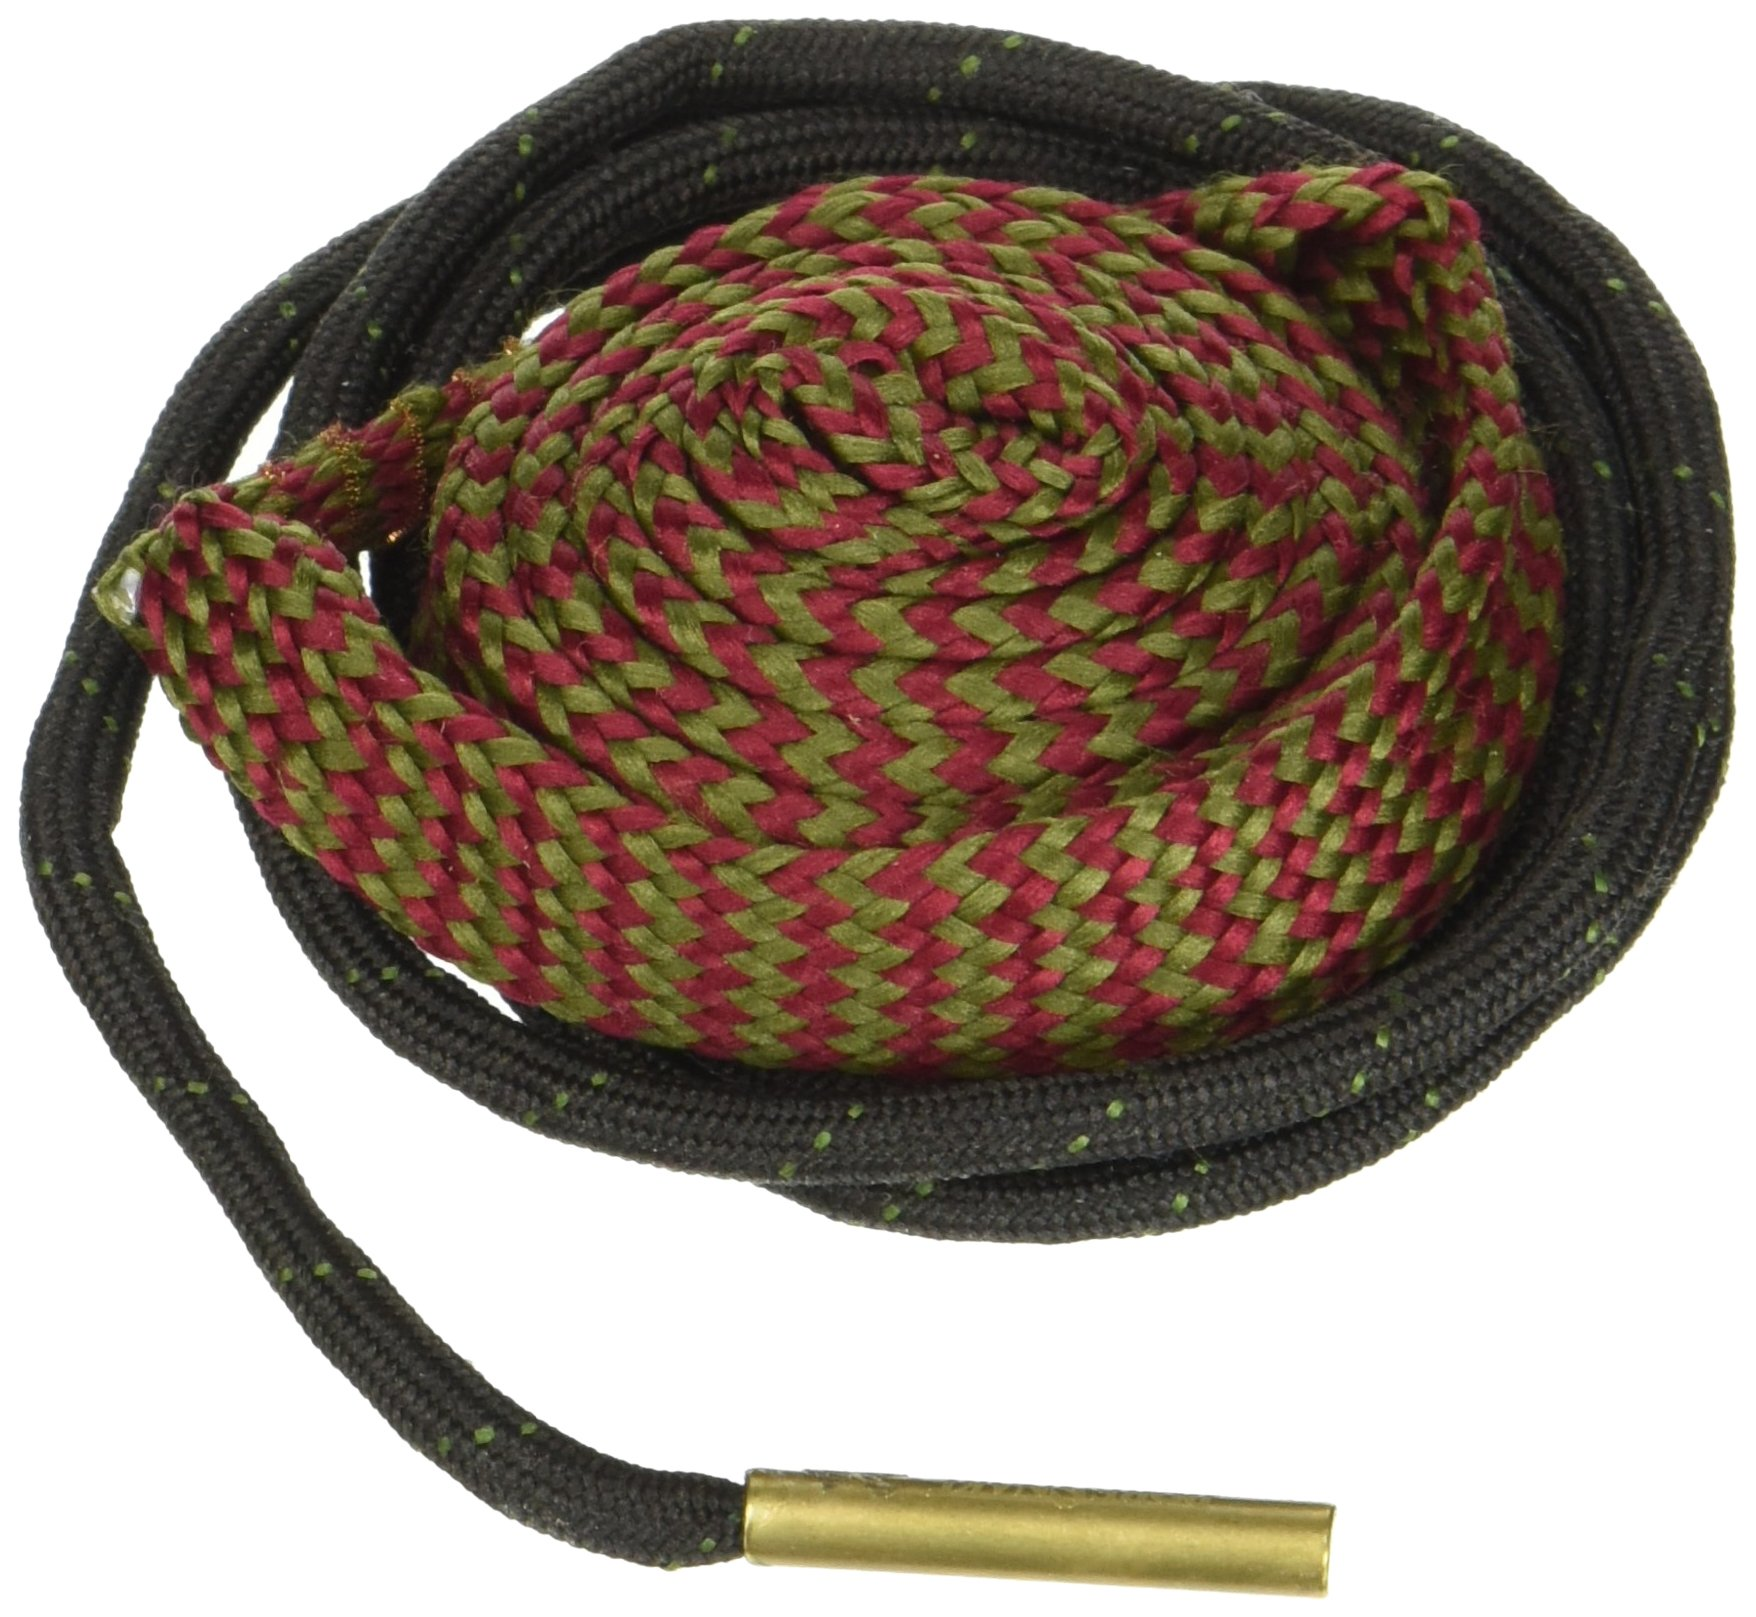 Hoppe's Boresnake Viper m 16, .22 - .225 Caliber Rifle, Clam E/F (colors may vary) by HOPPE'S